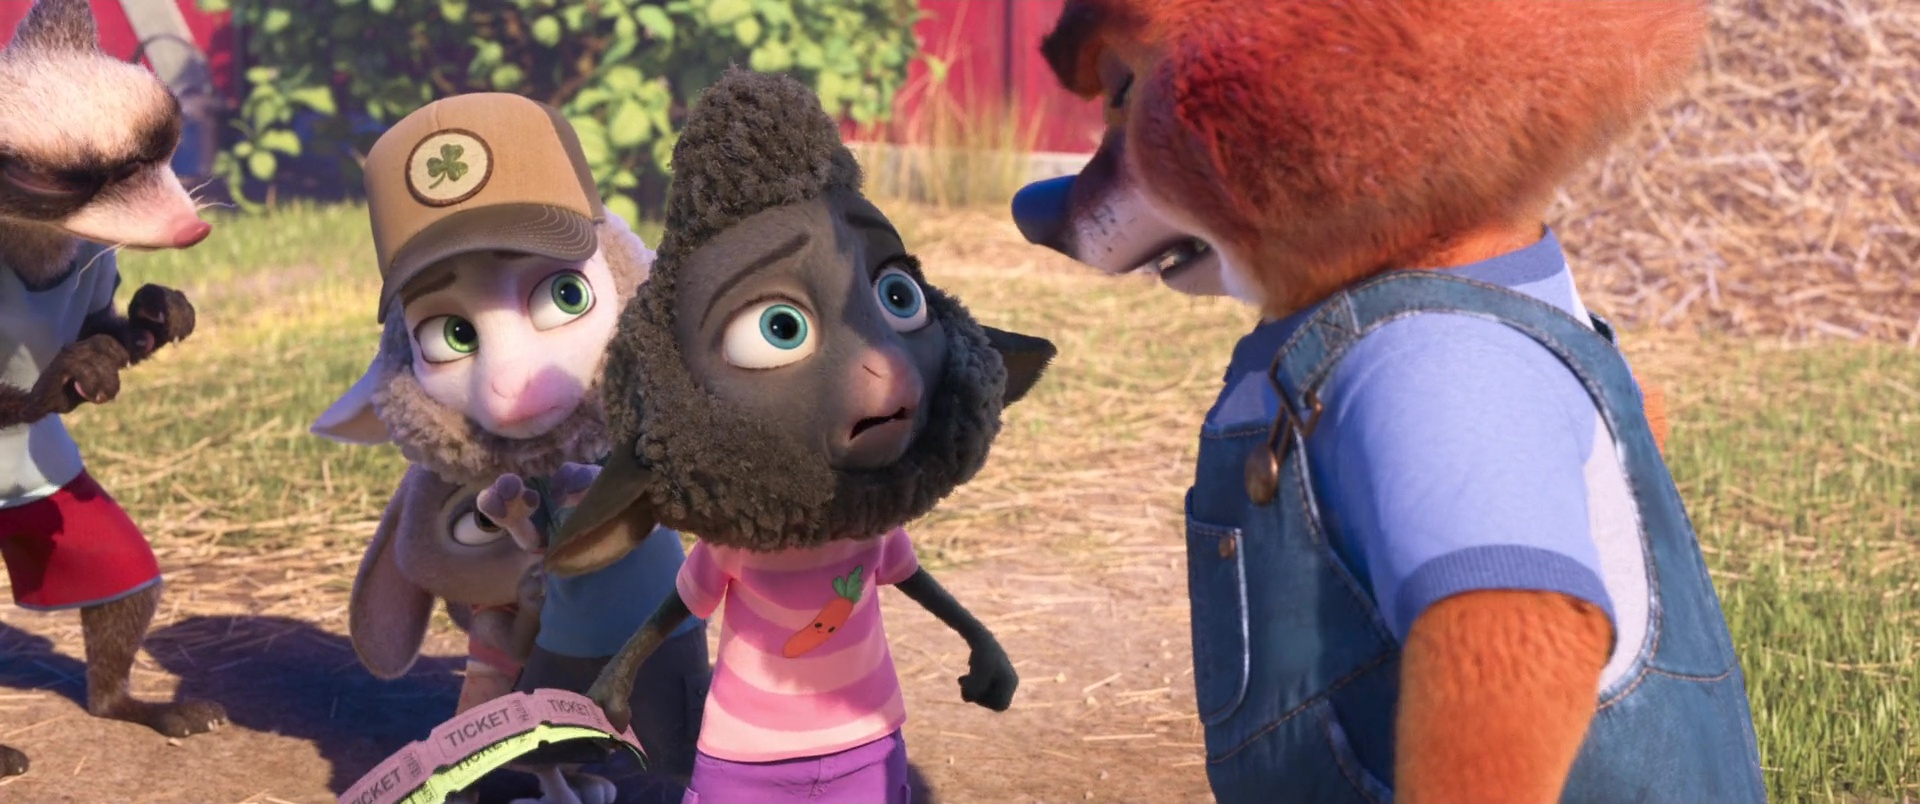 sharla disney personnage character zootopie zootopia